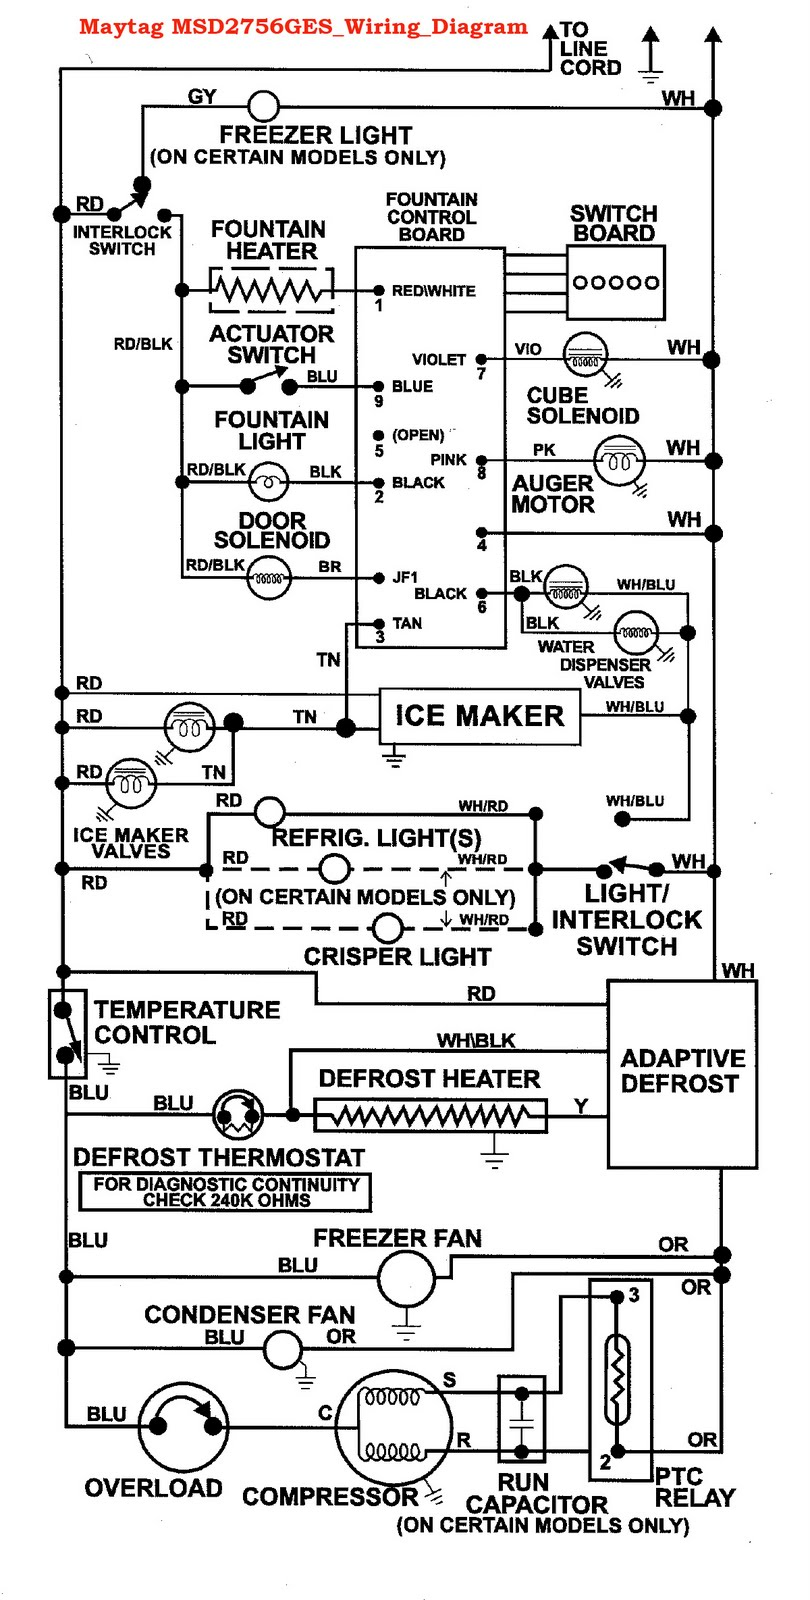 hight resolution of maytag refrigerator wiring diagram simple wiring diagram rh 26 mara cujas de dryer wiring maytag dryer